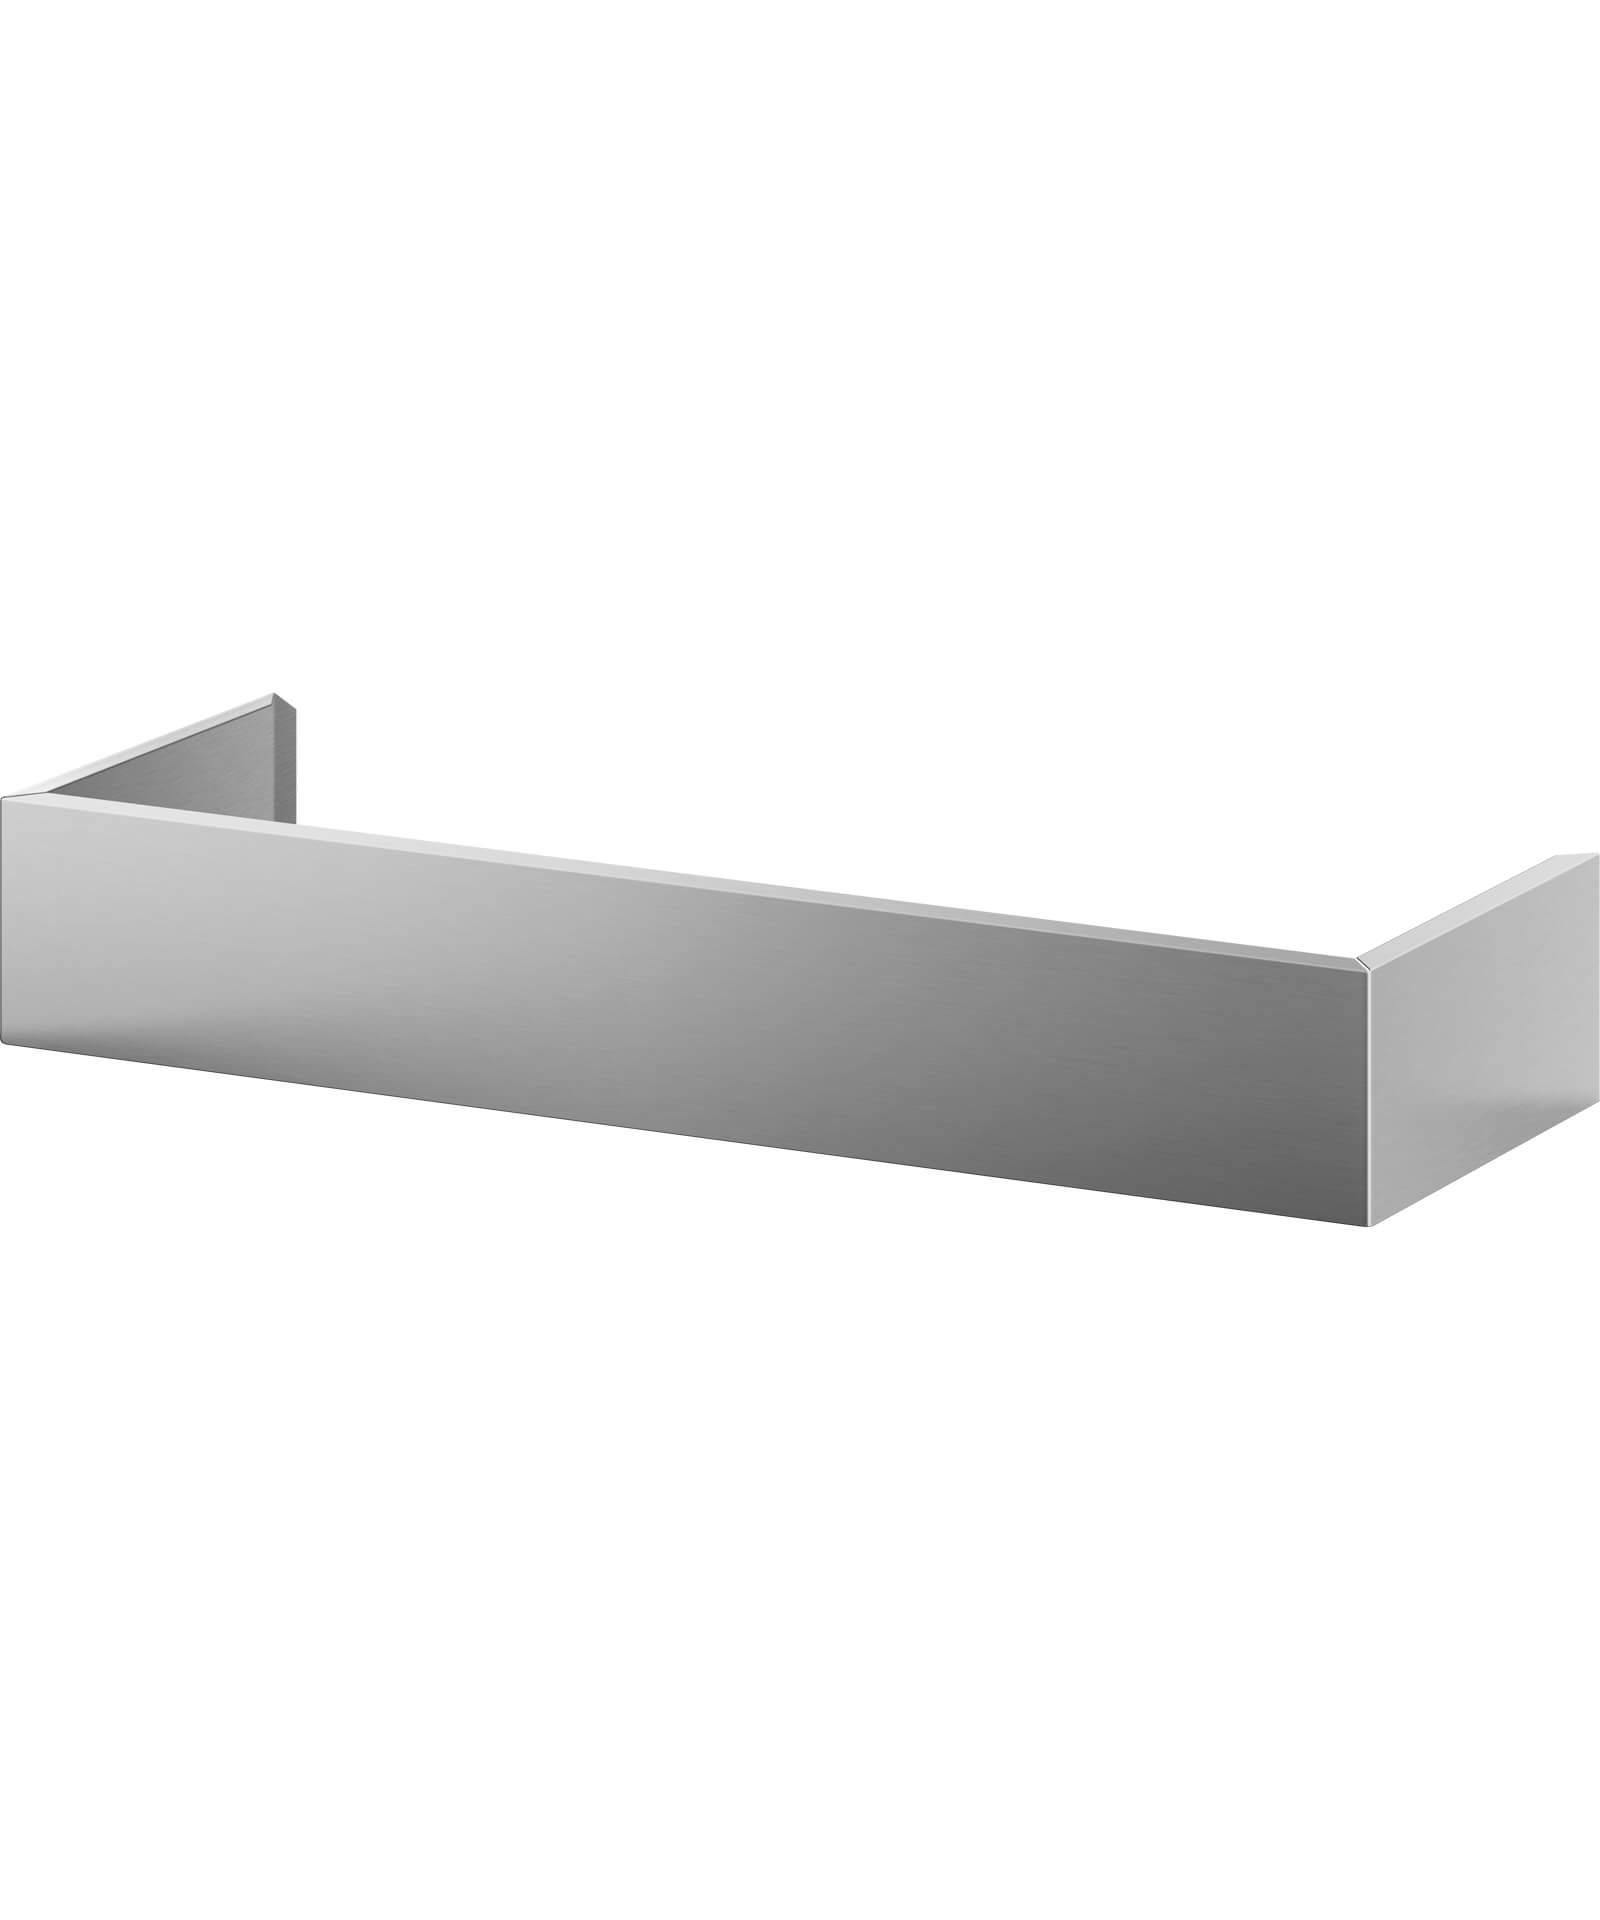 Duct Cover Accessory, 36